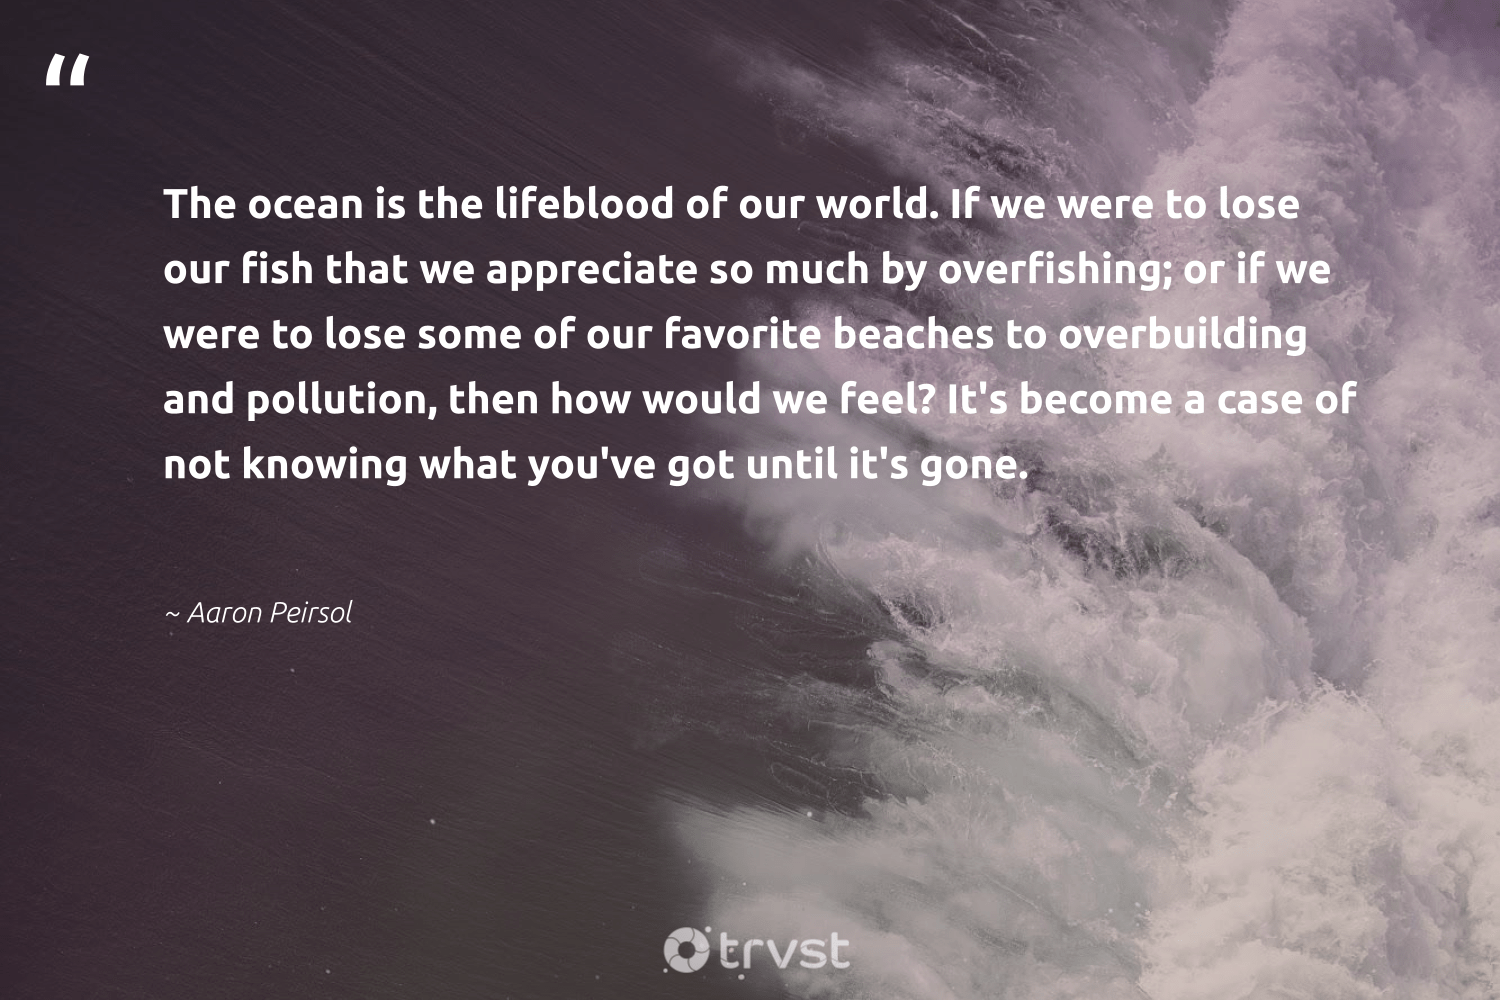 """""""The ocean is the lifeblood of our world. If we were to lose our fish that we appreciate so much by overfishing; or if we were to lose some of our favorite beaches to overbuilding and pollution, then how would we feel? It's become a case of not knowing what you've got until it's gone.""""  - Aaron Peirsol #trvst #quotes #pollute #pollution #ocean #fish #sustainableliving #volunteer #beinspired #spill #giveback #savetheplanet"""